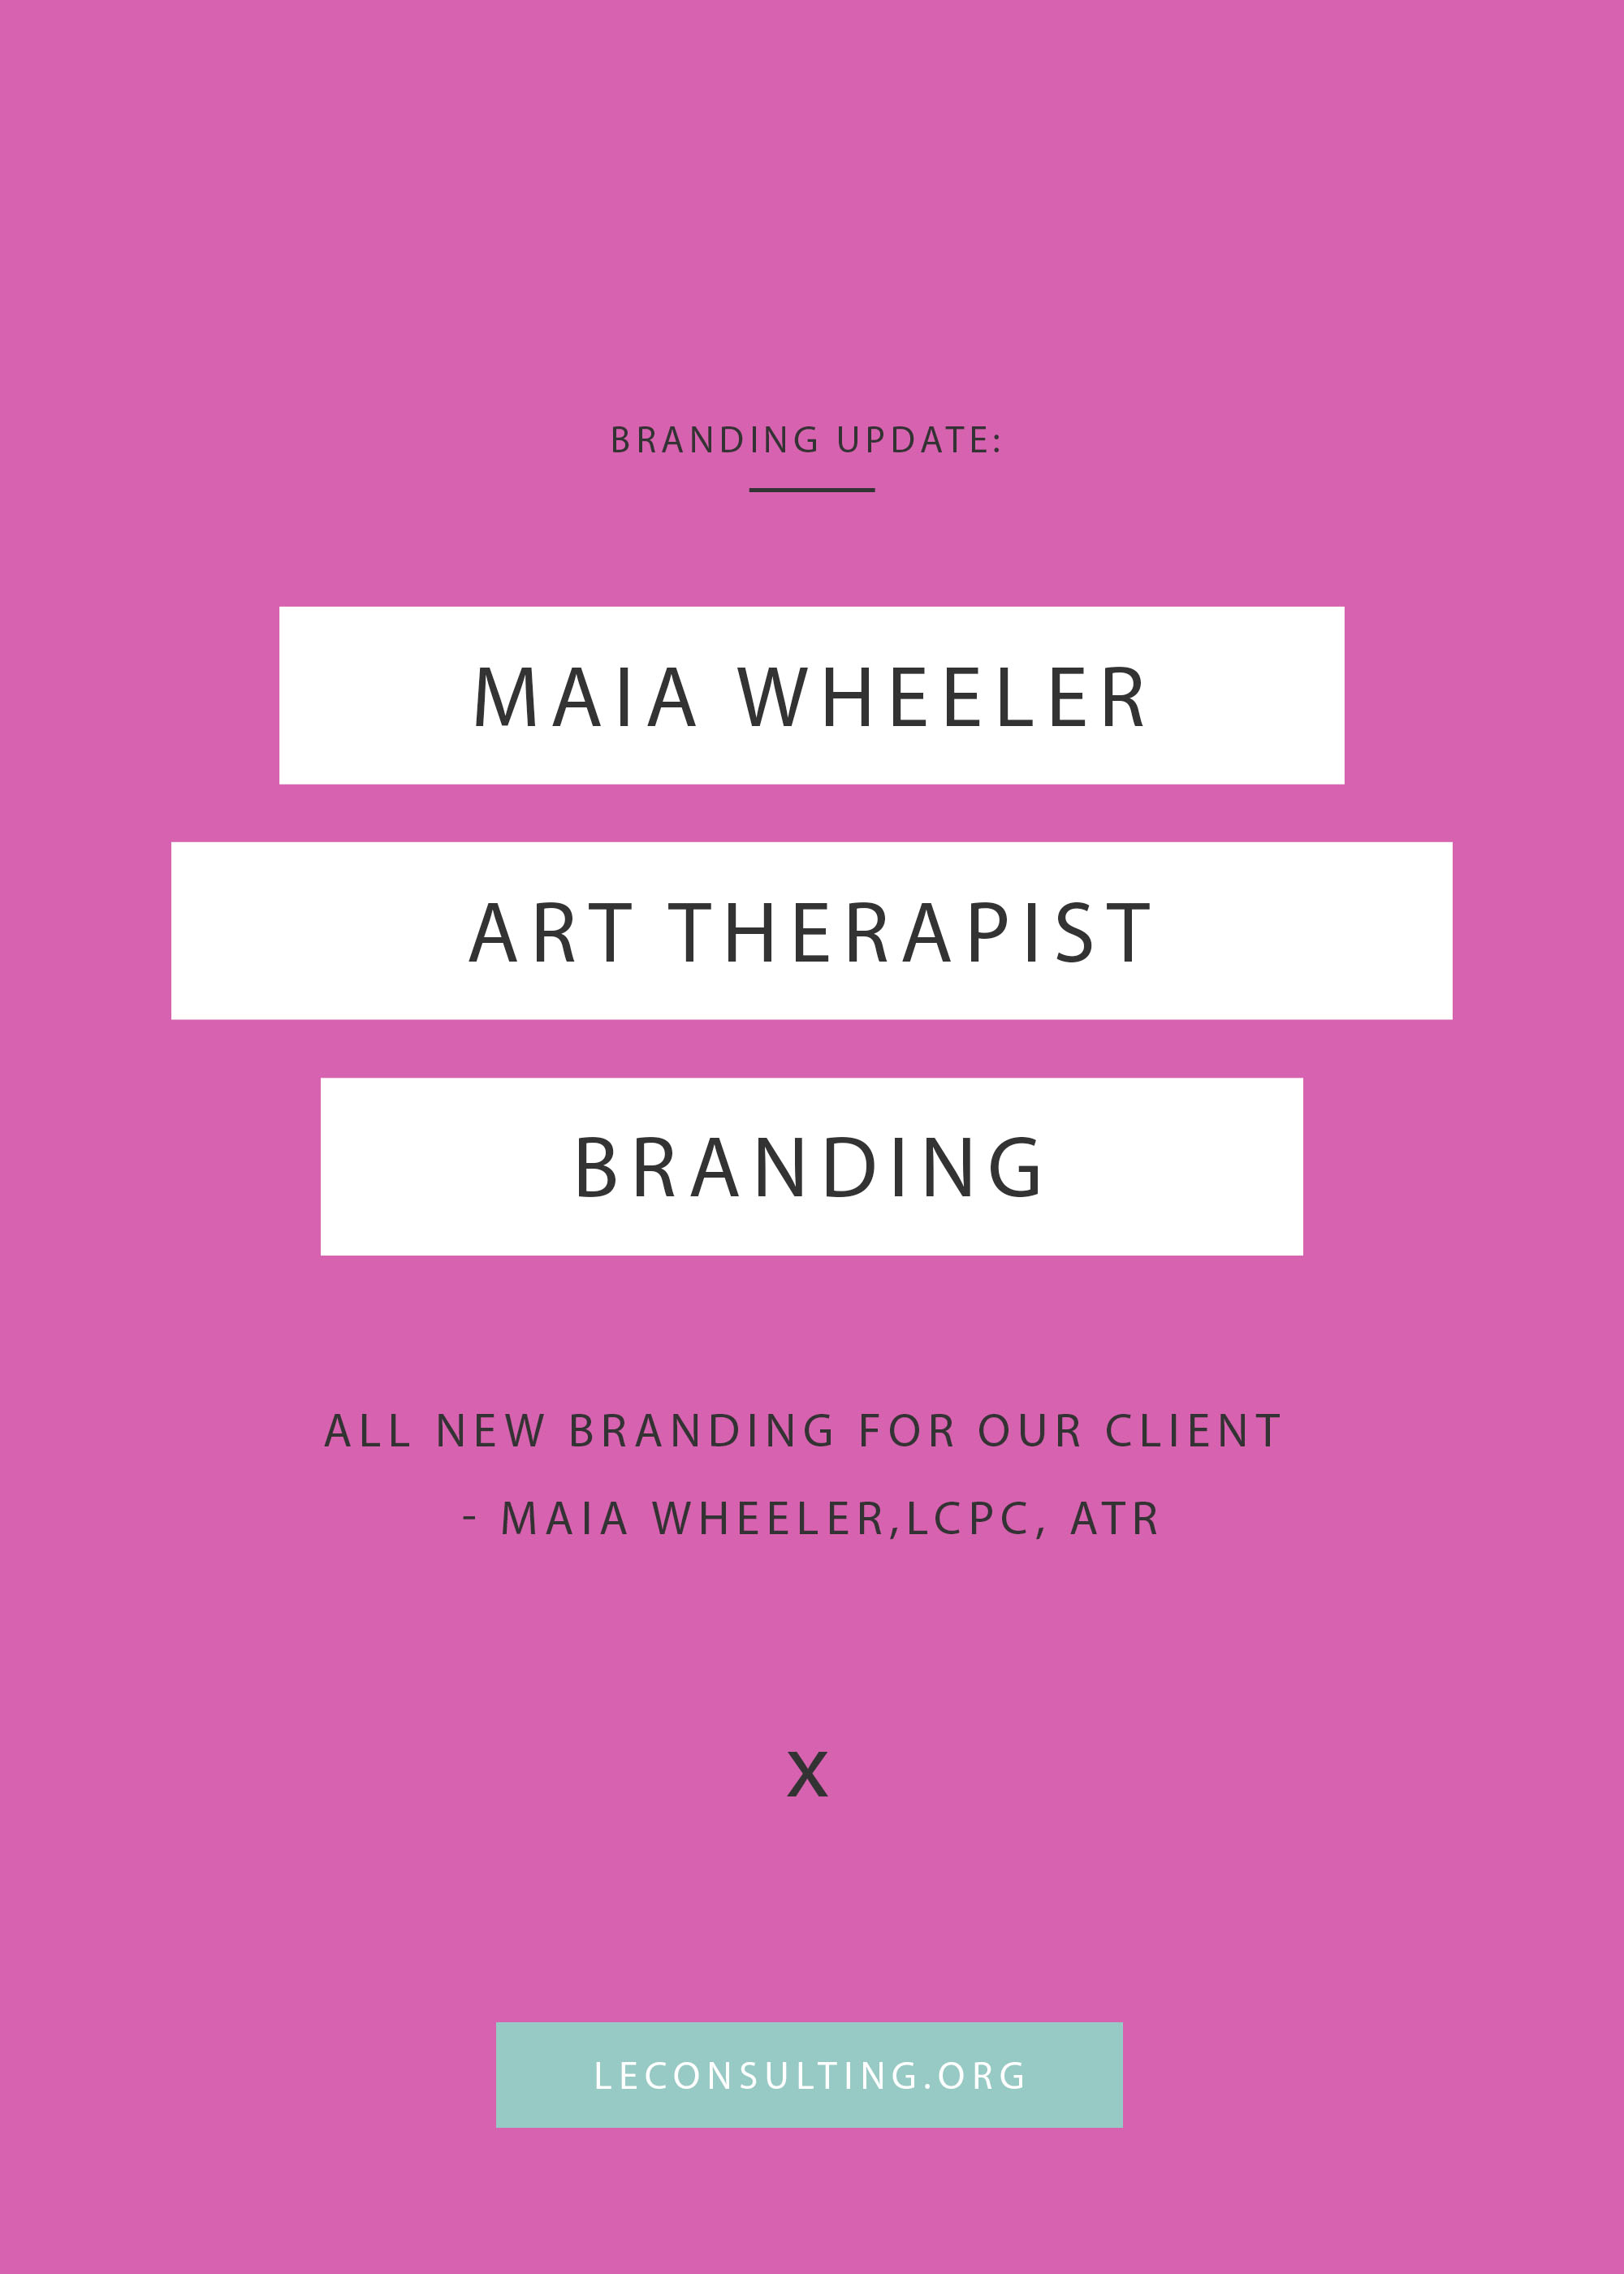 Maia, an art therapist, turned to Le Consutling for branding assistance. Click through to see the outcome of Maia's branding update. If you need marketing assistance for your creative business, contact Le Consulting at leconsulting.org. | LE Consulting